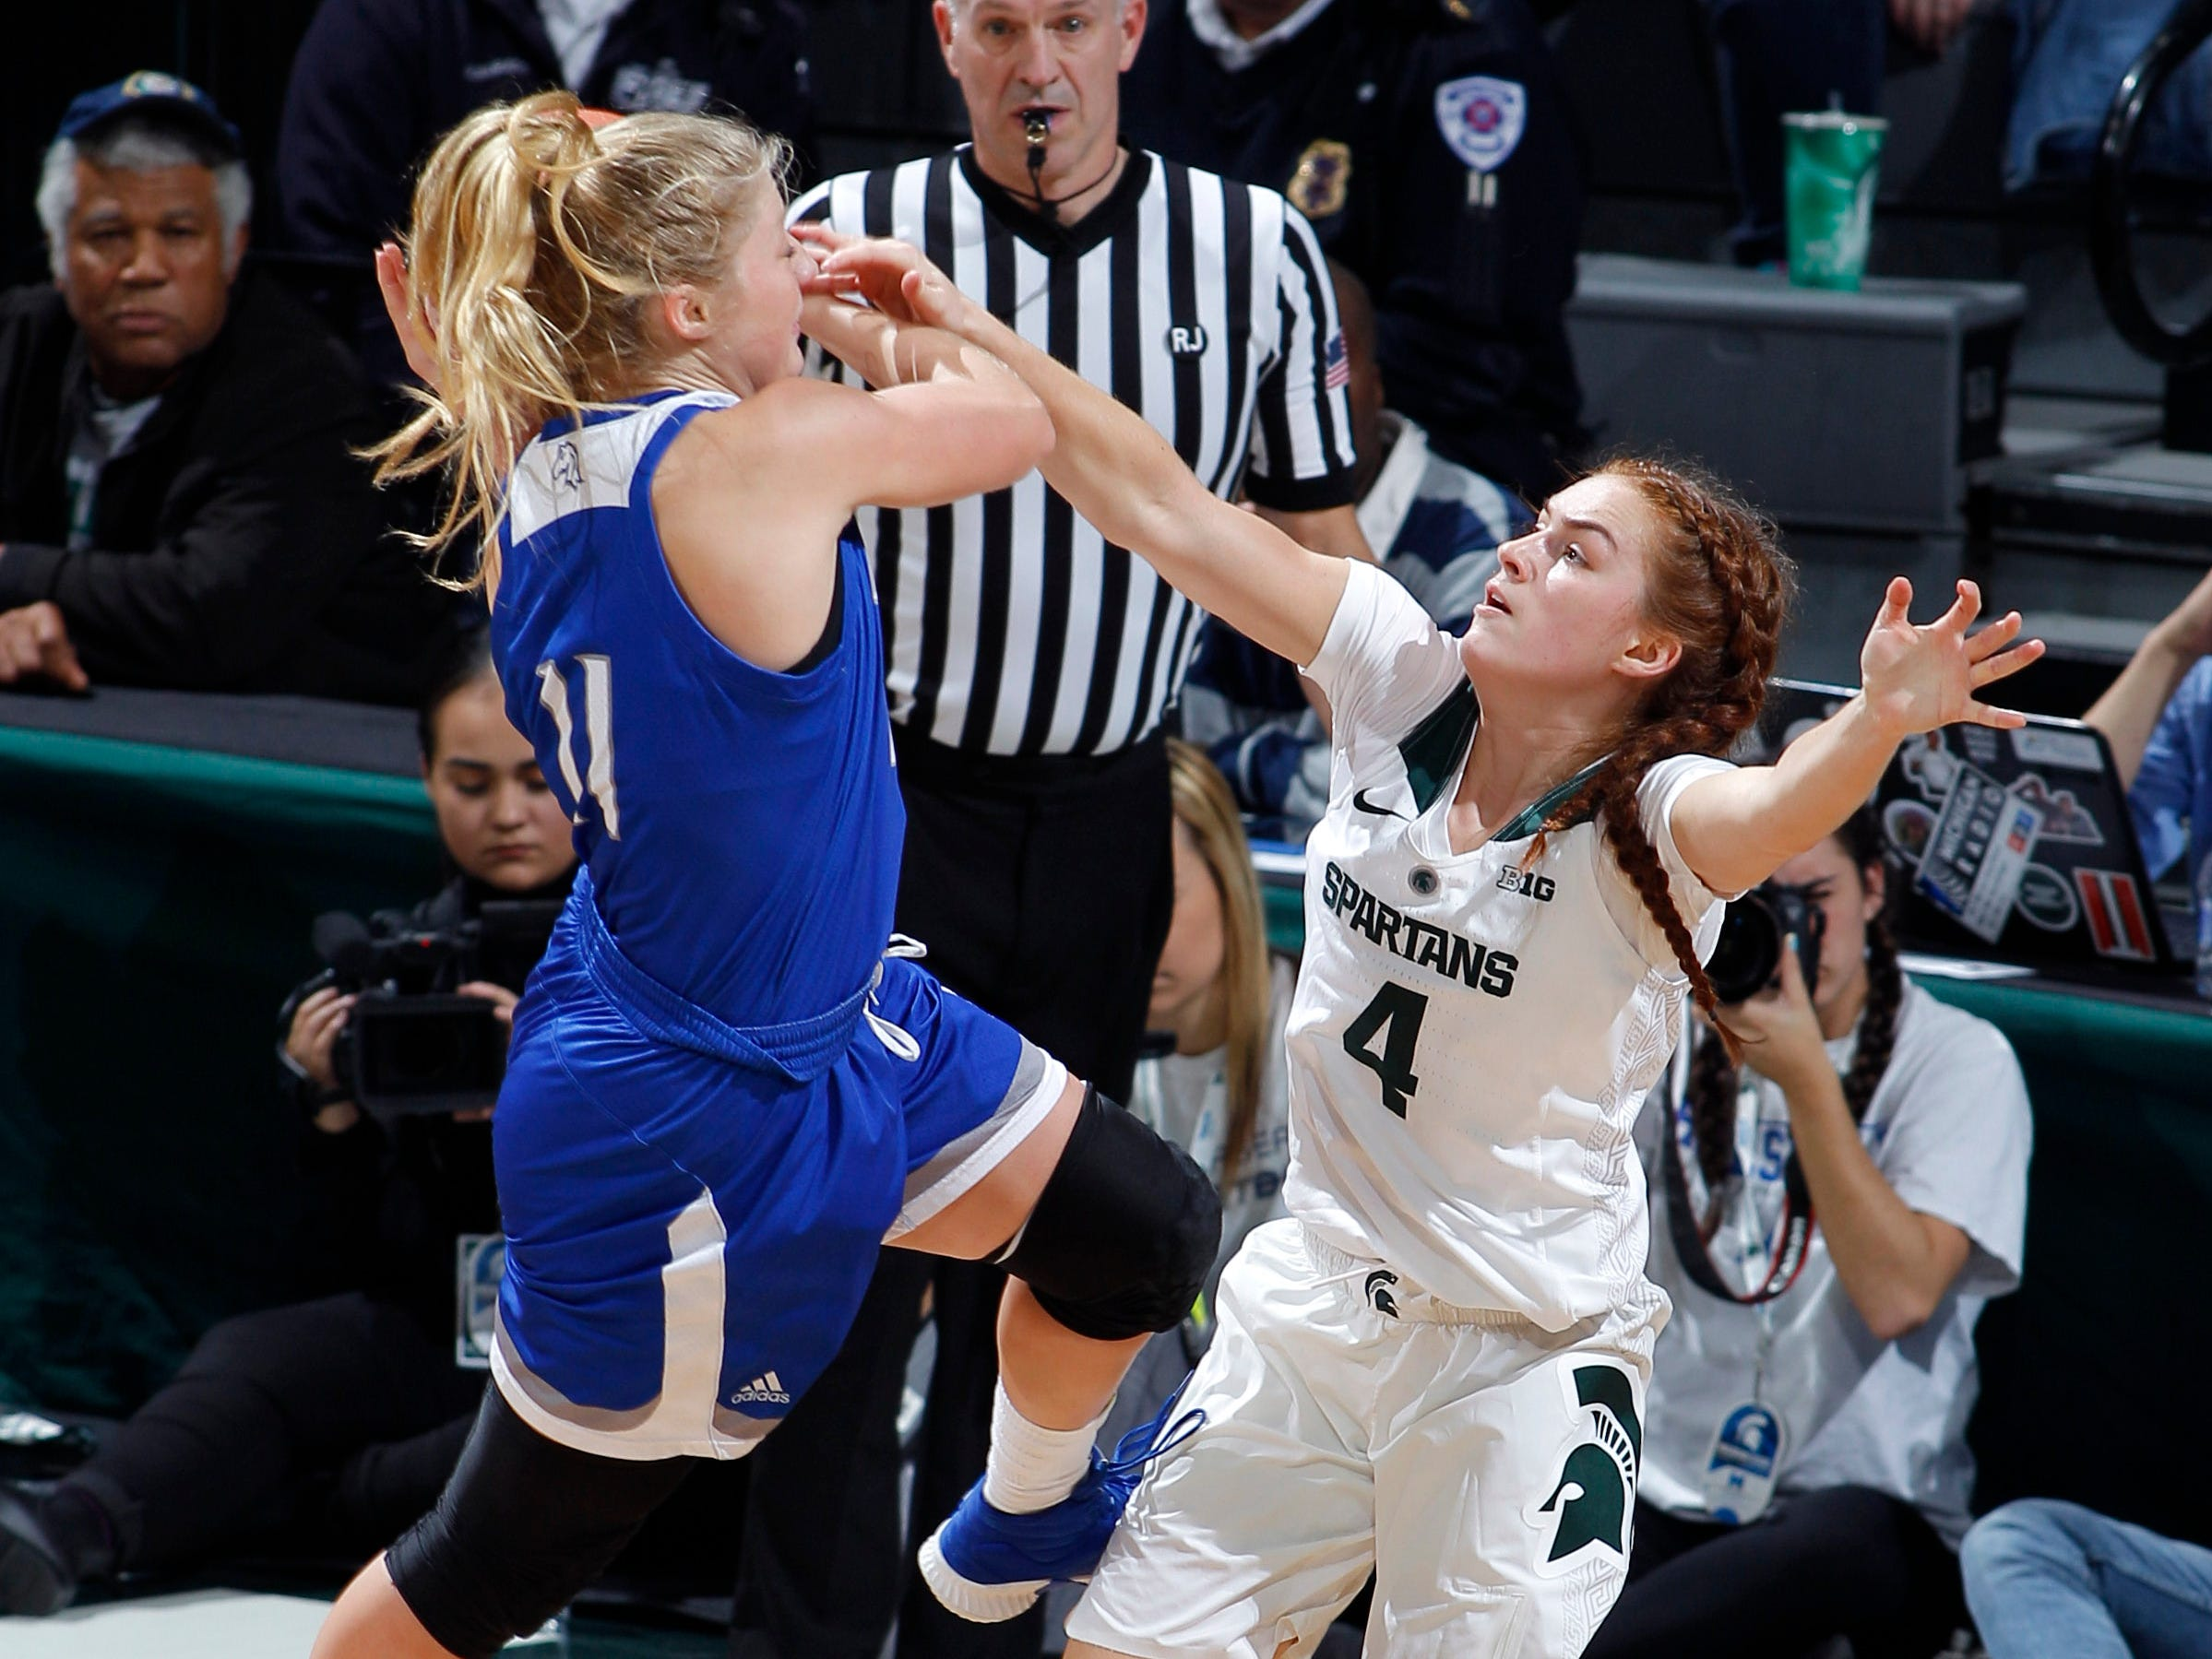 Michigan State's Taryn McCutcheon, right, knocks the ball away from Hillsdale's Allie Dewire, Thursday, Nov. 1, 2018, in East Lansing, Mich.